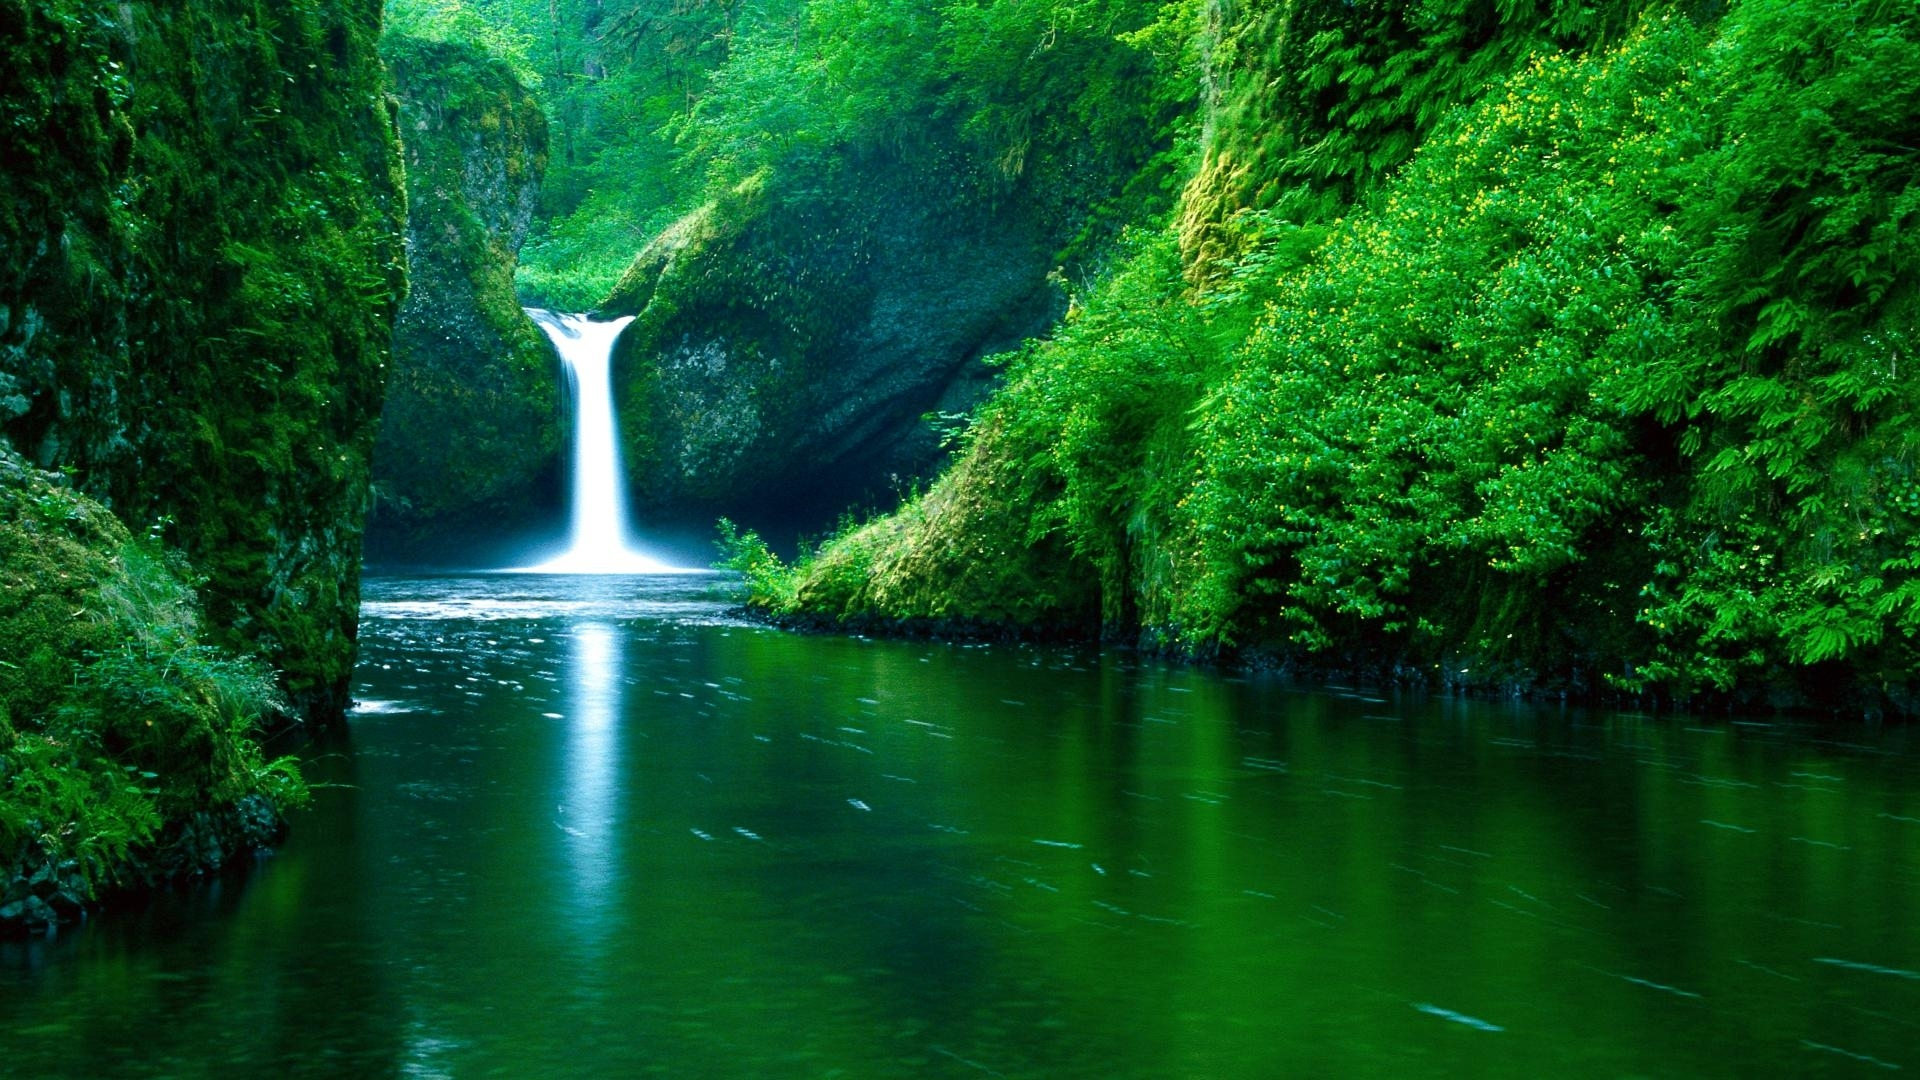 10 Top Hd Widescreen Nature Wallpaper Full Hd 1920 1080 For Pc